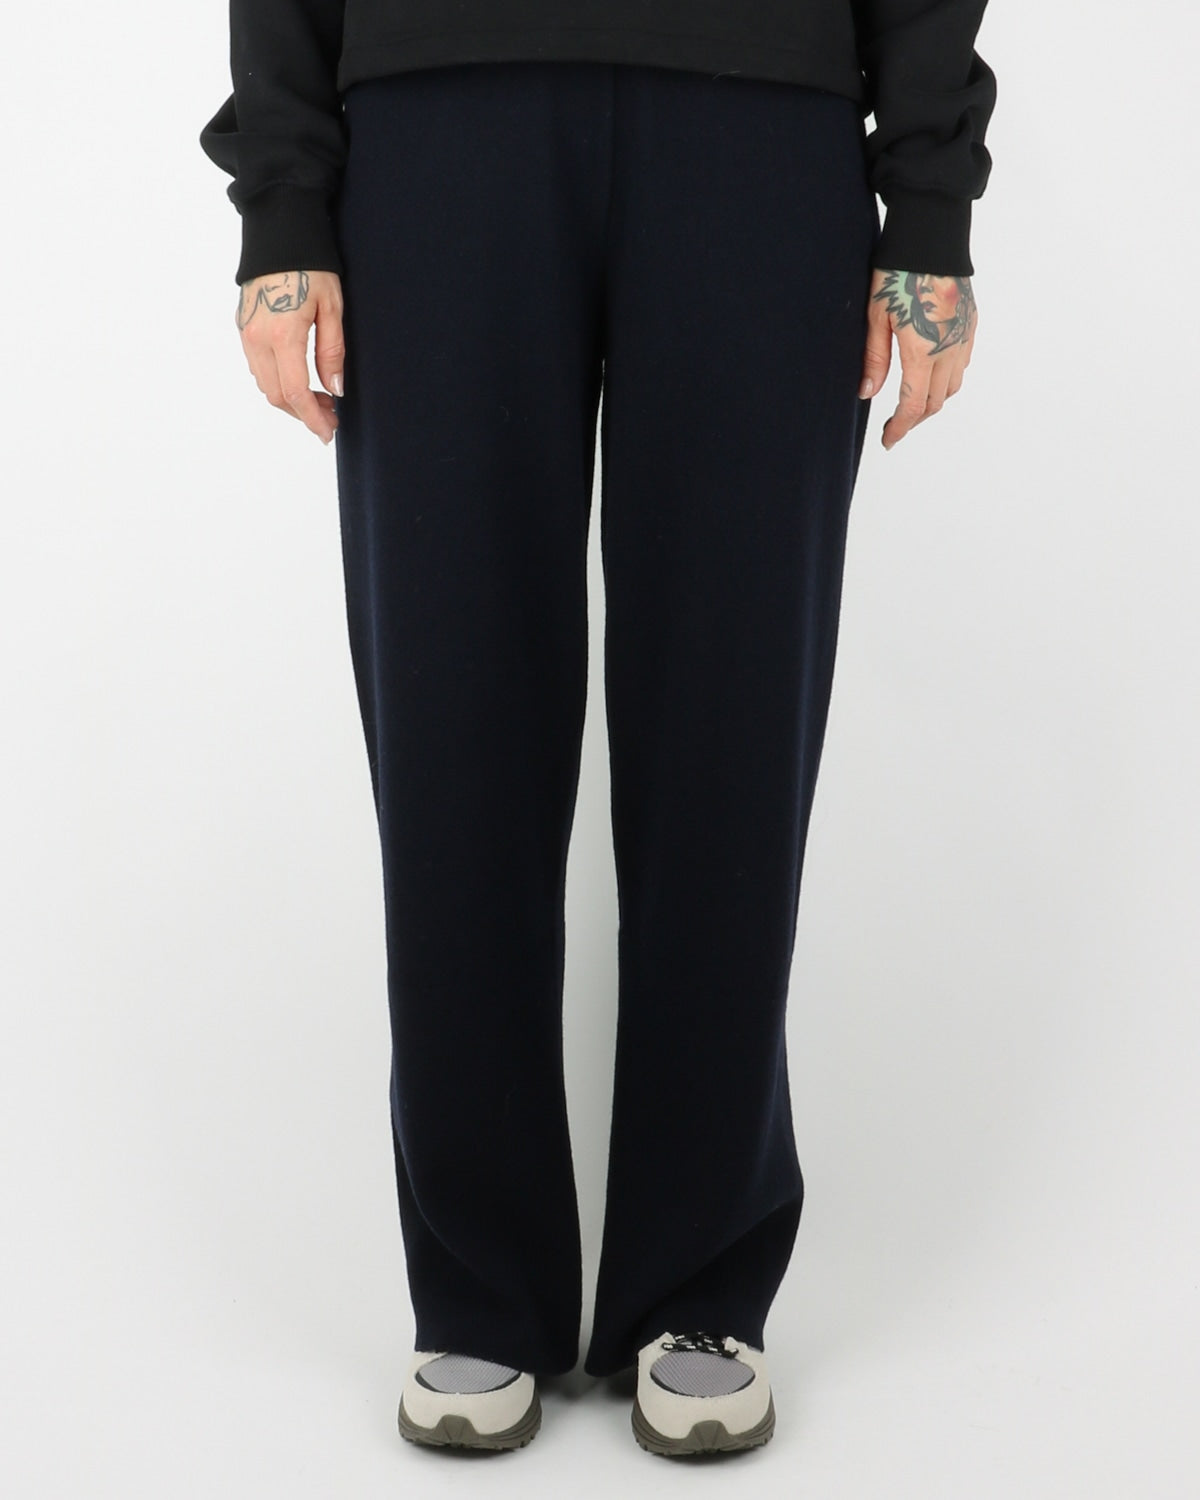 libertine libertine_relax pants_black_1_2